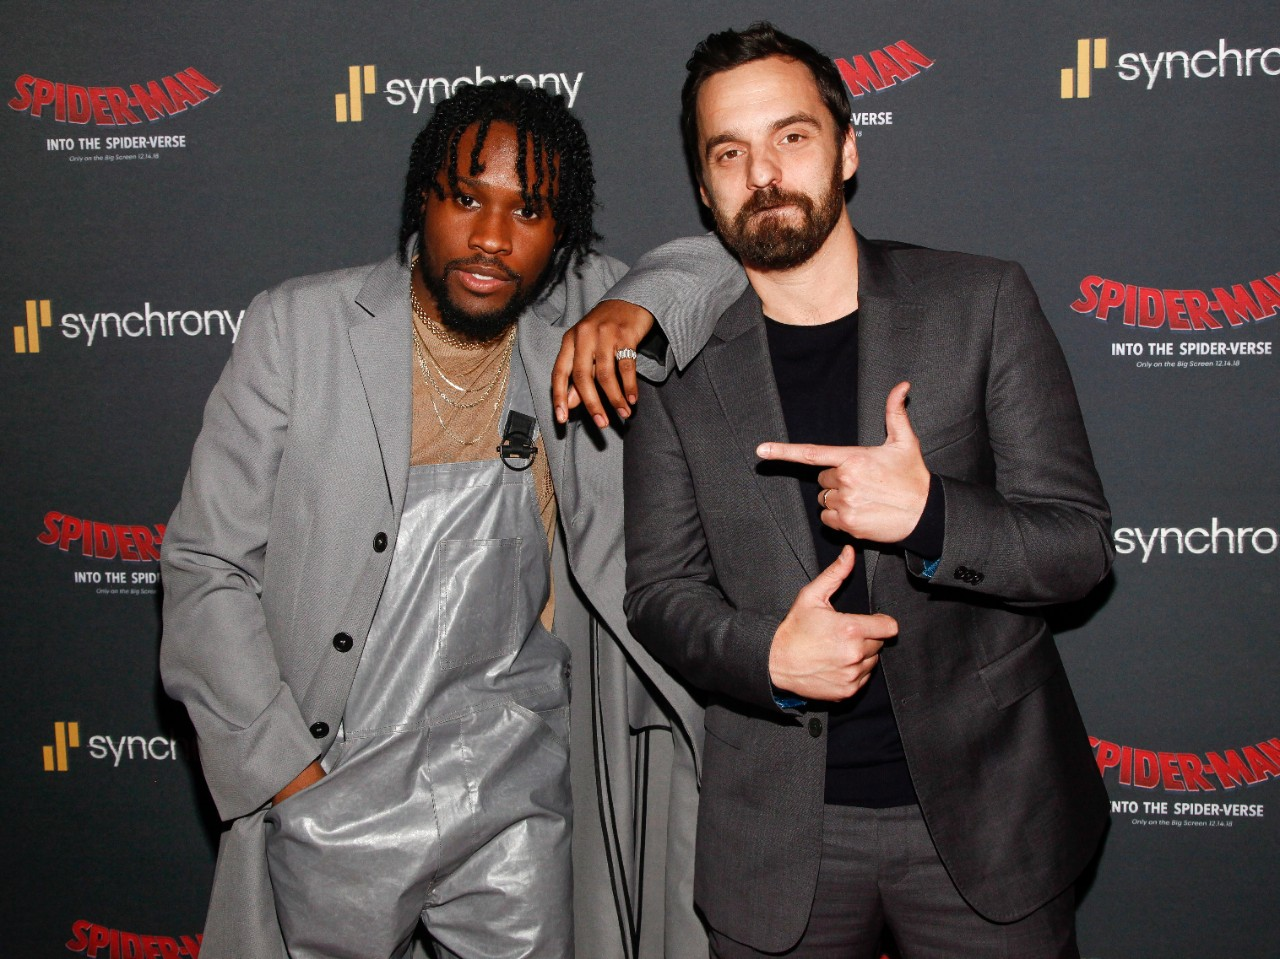 Shameik Moore, left, and Jake Johnson, right, attend a 'Spider-Man: Into the Spider-Verse' event in New York, on Dec. 11, 2018. (Andy Kropa / Invision / AP)